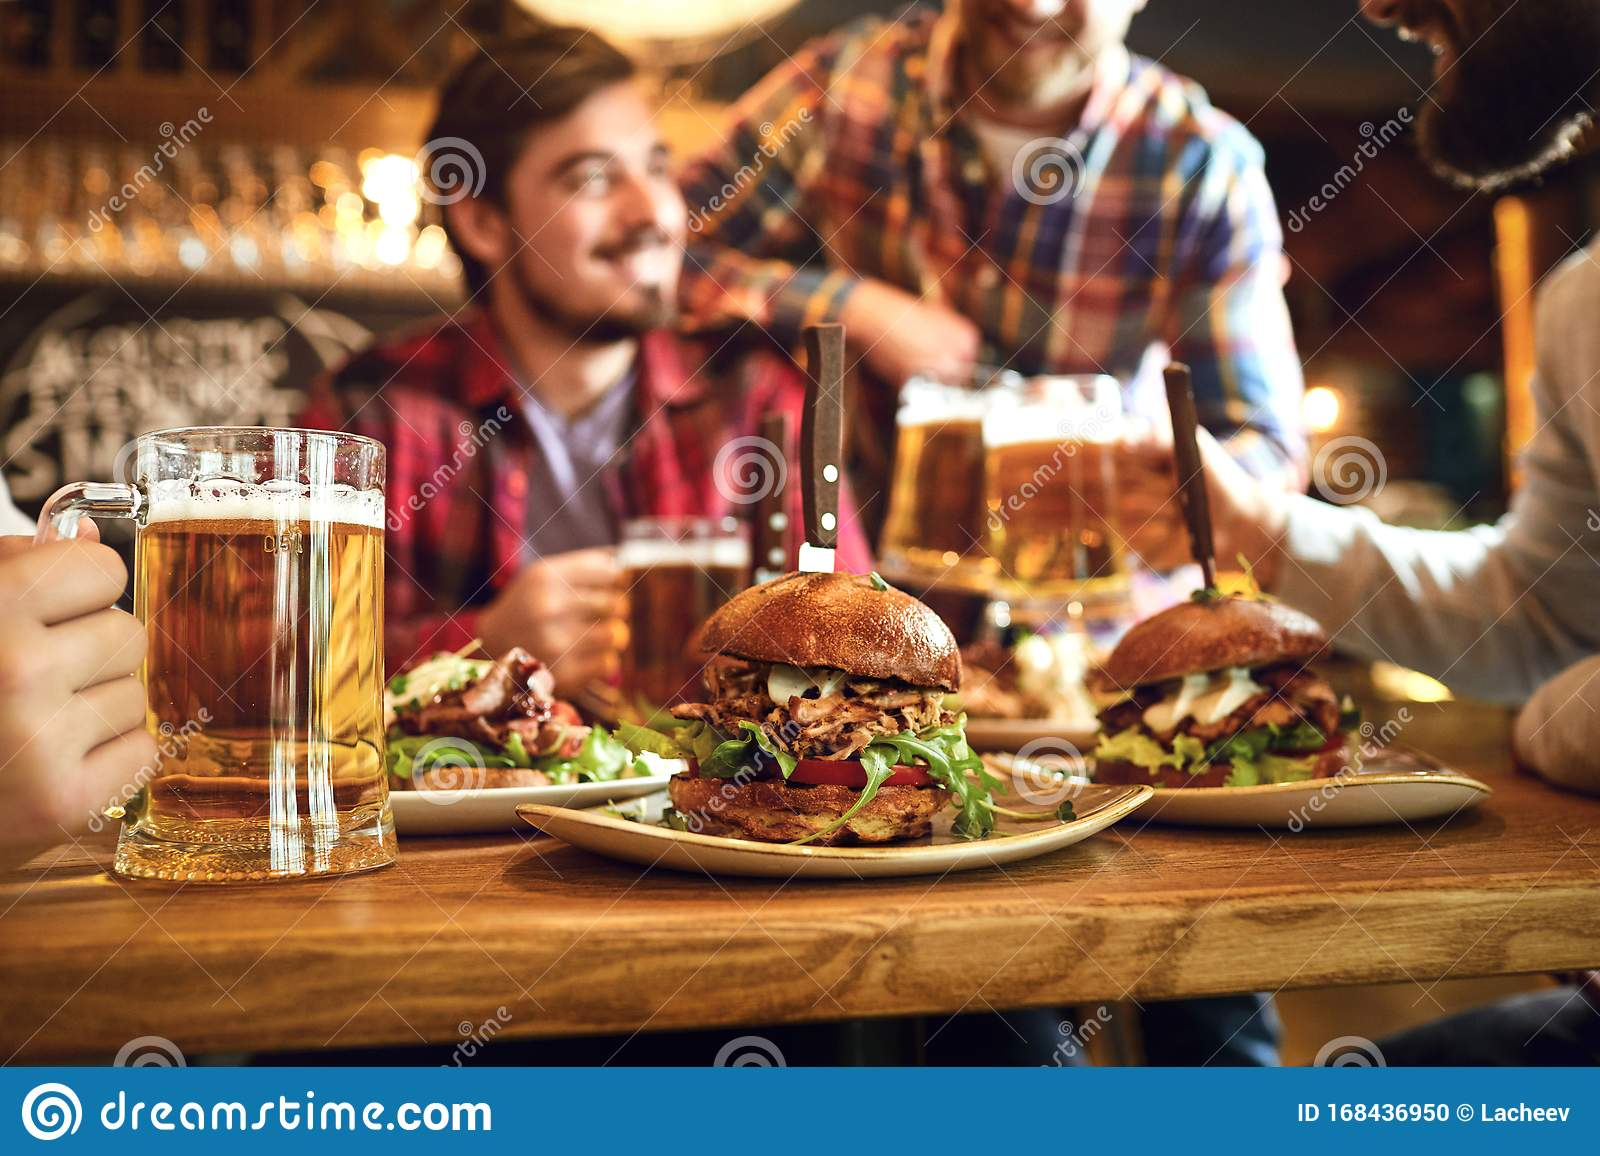 Burger With Beer On The Table In A Bar Pub Stock Photo Image Of Alcohol Meal 168436950